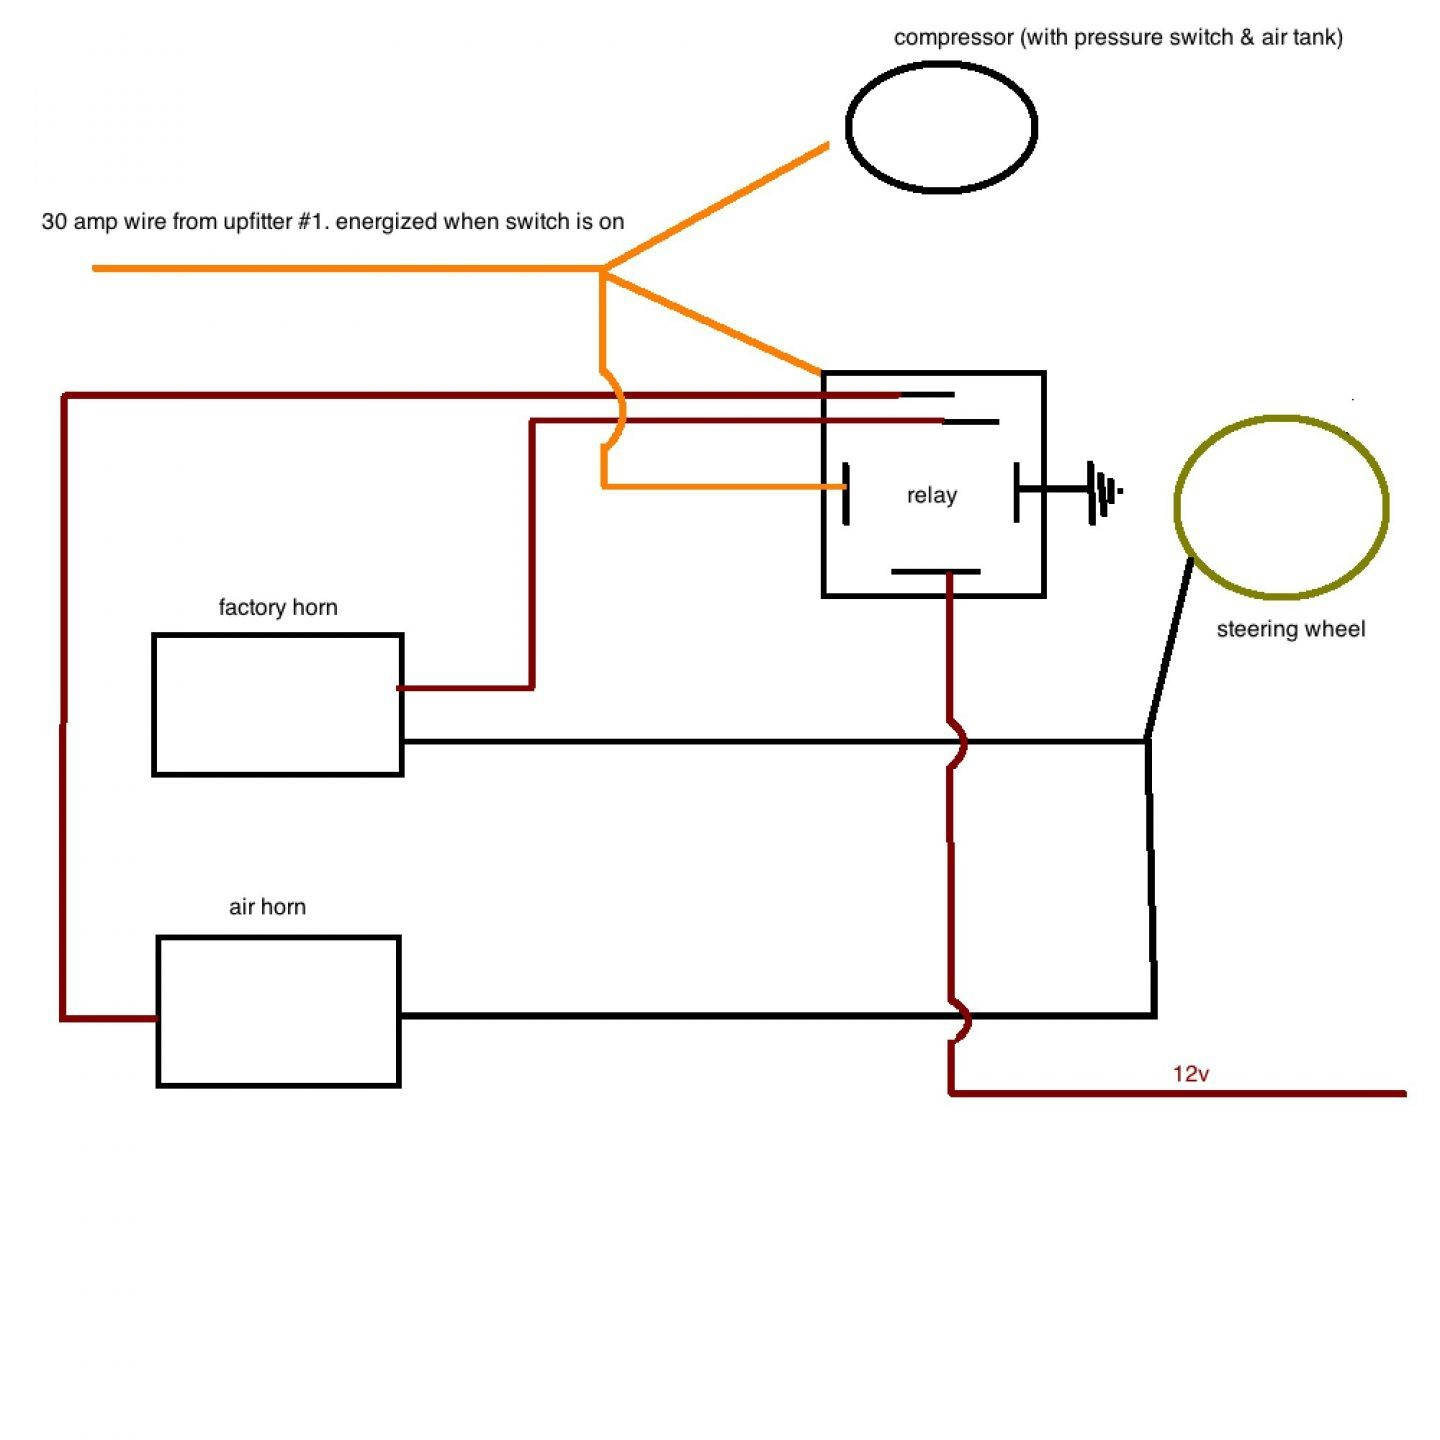 kleinn air horn wiring diagram Download-car horn wiring diagram Download  Air Horn Wiring Diagram. DOWNLOAD. Wiring Diagram ...